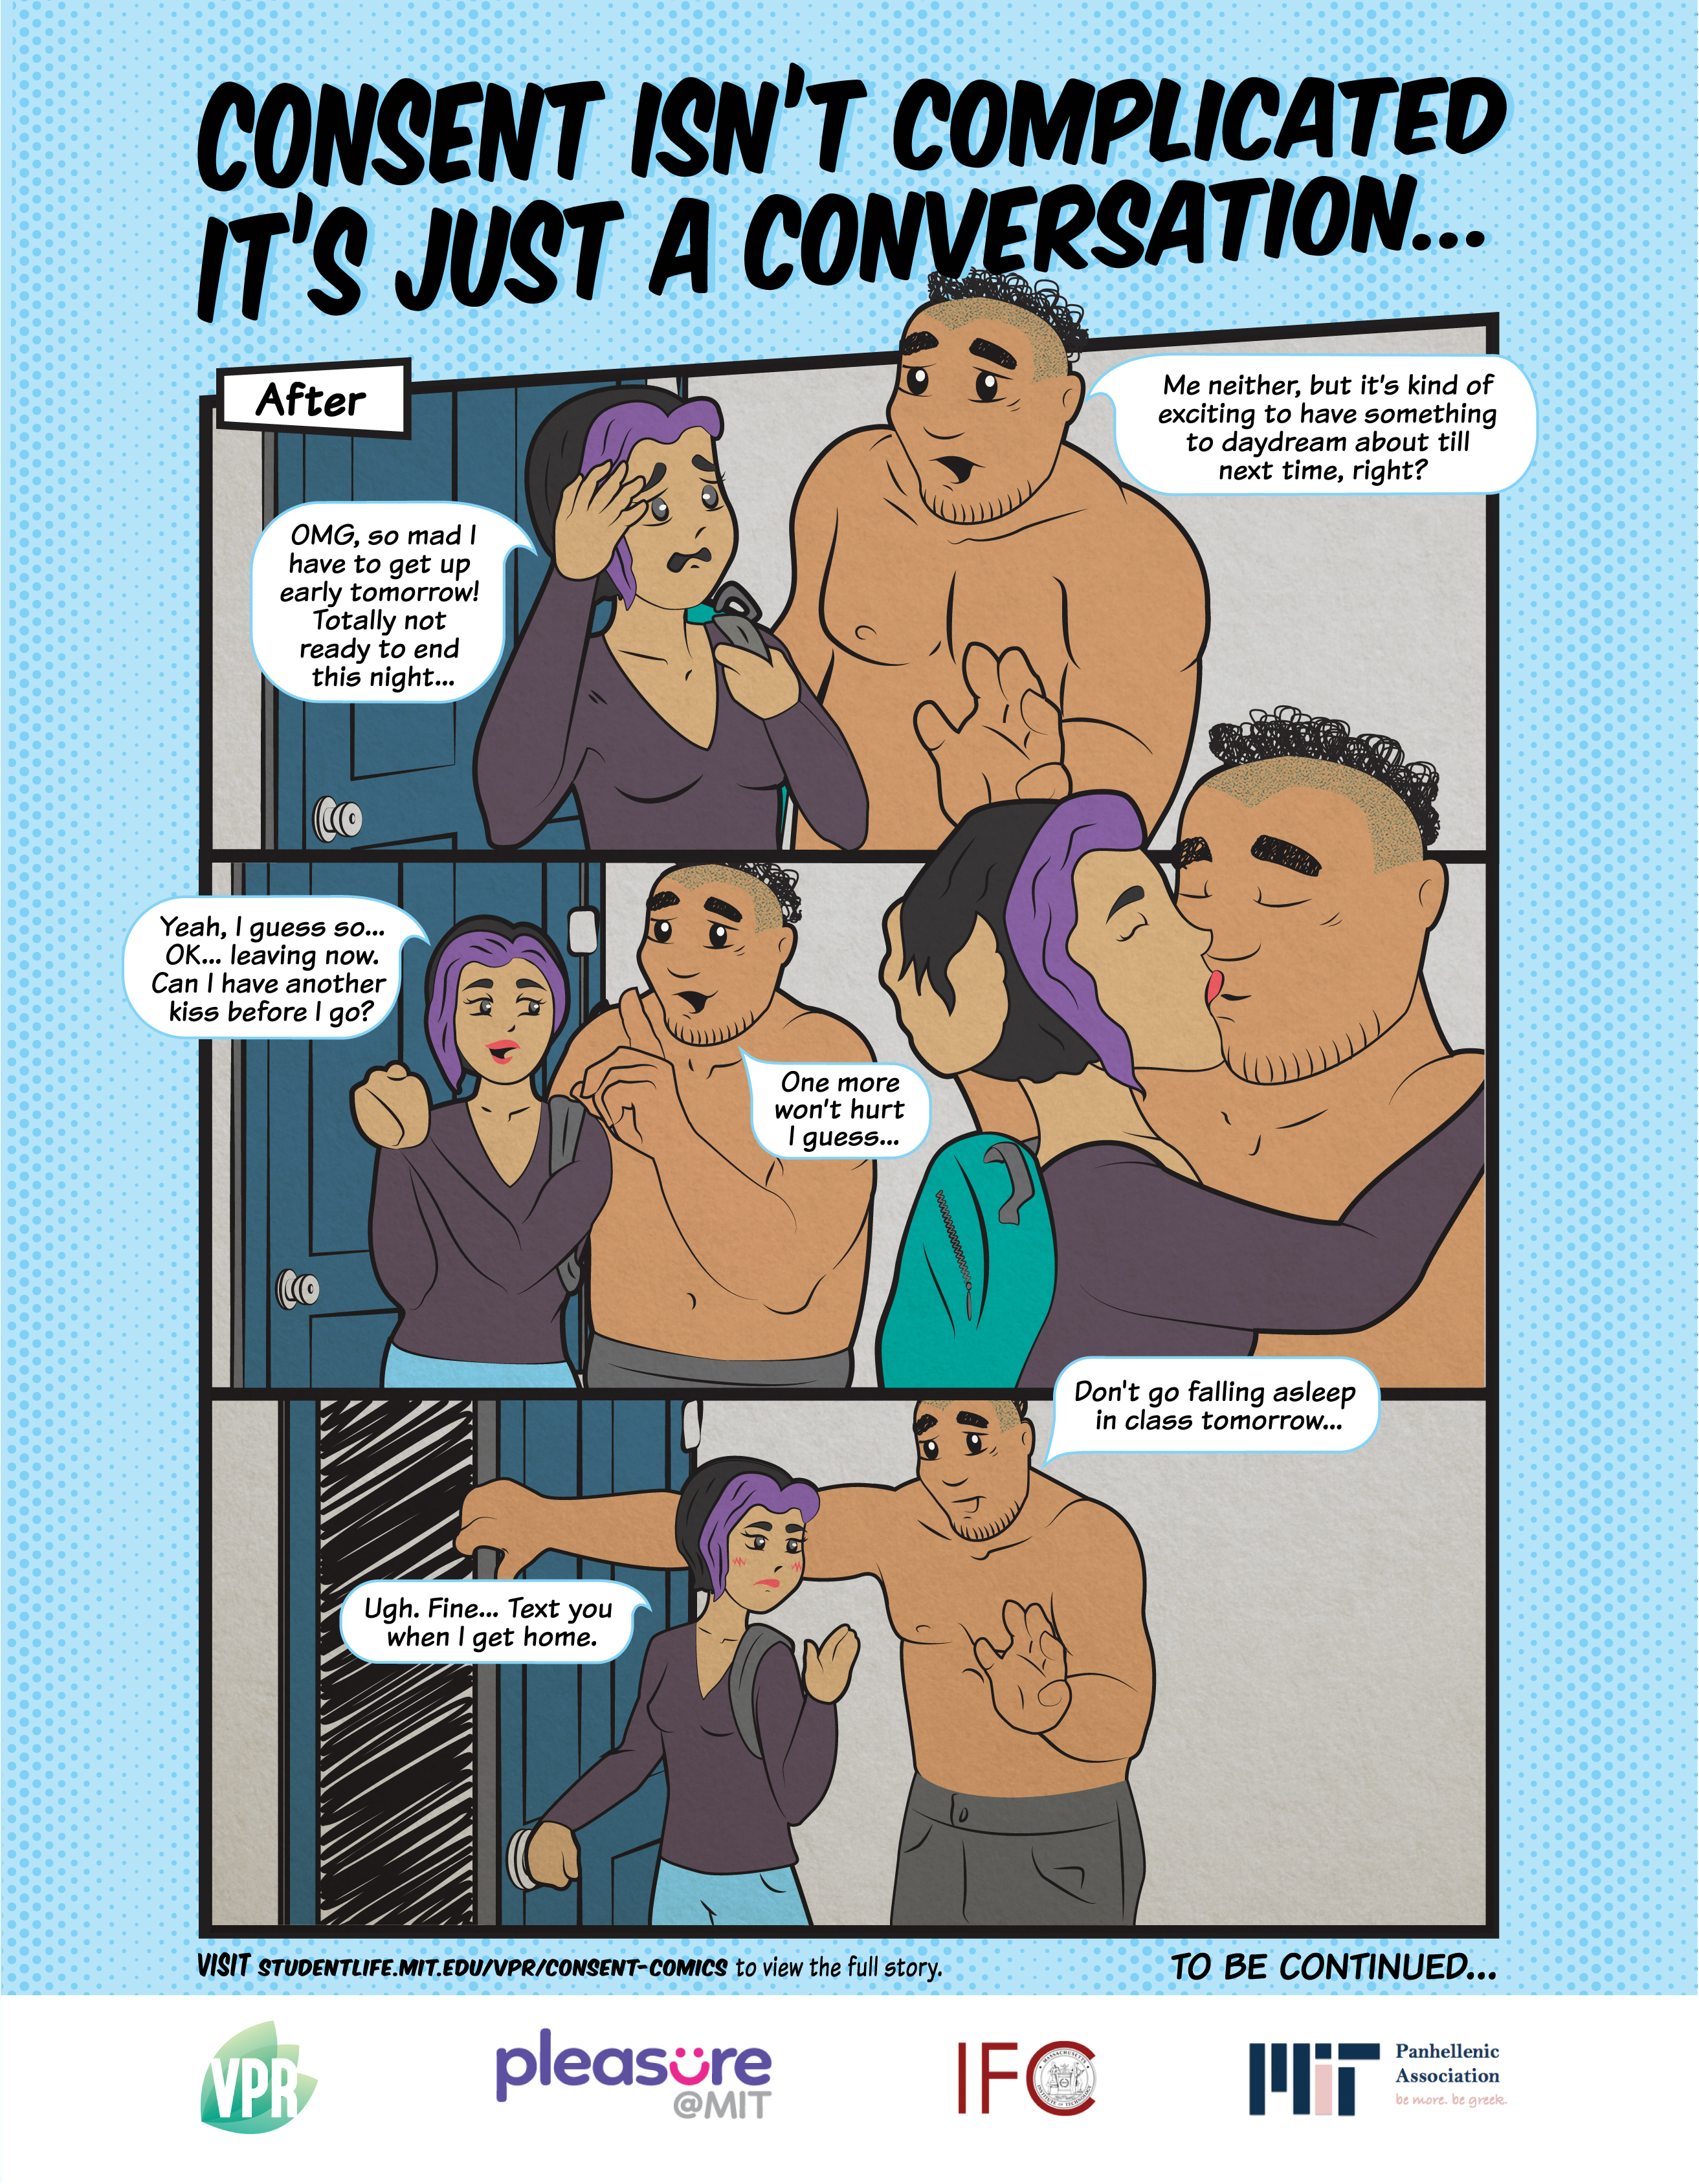 Consent campaign volume 1, poster 3